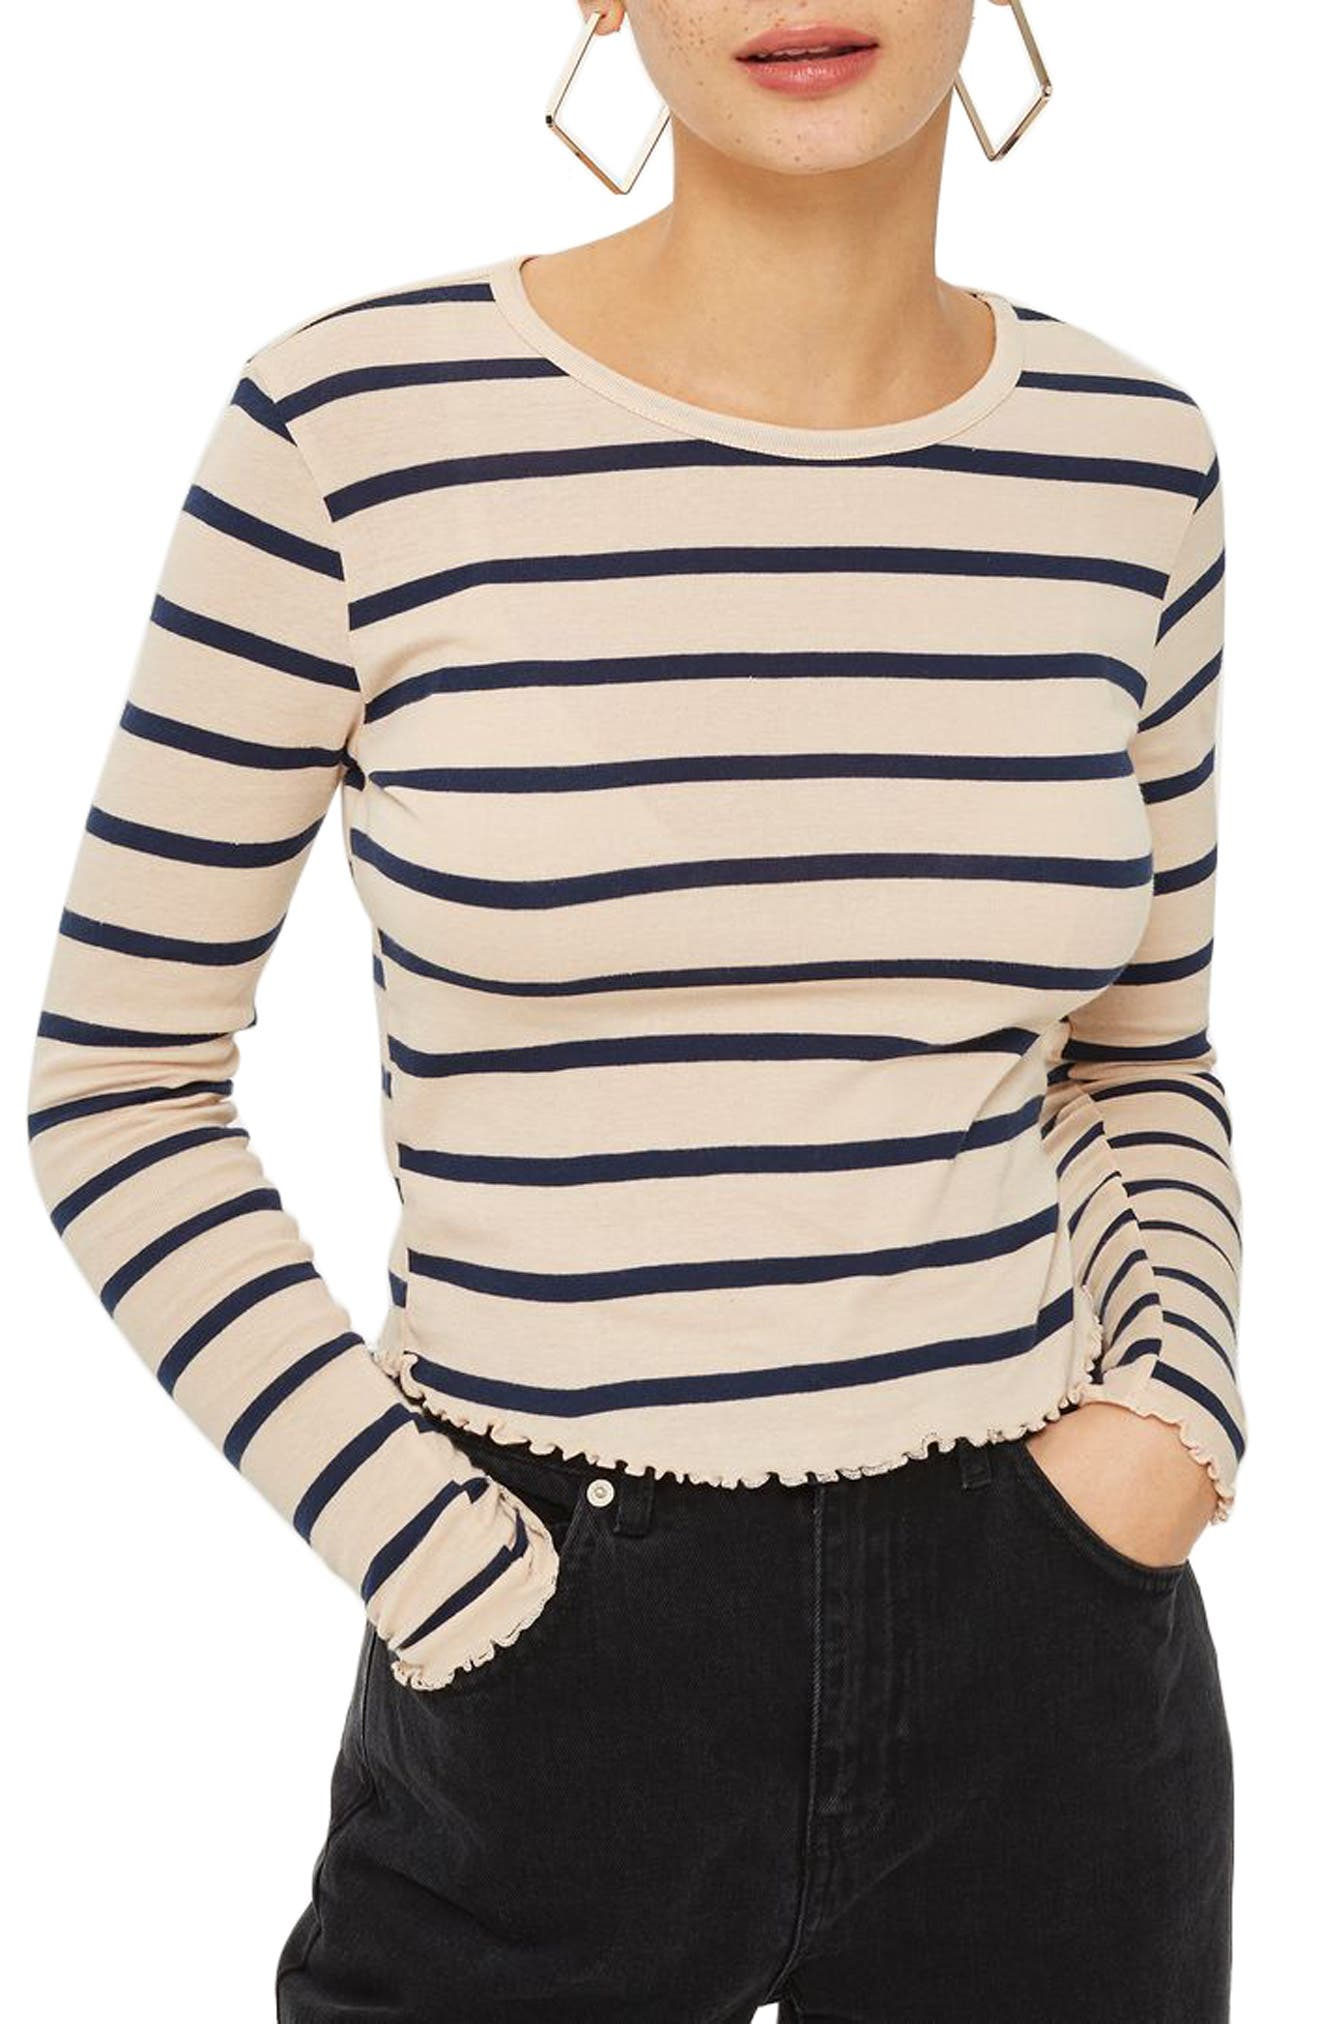 Petite Stripe Lettuce Trim T-Shirt,                             Main thumbnail 1, color,                             251